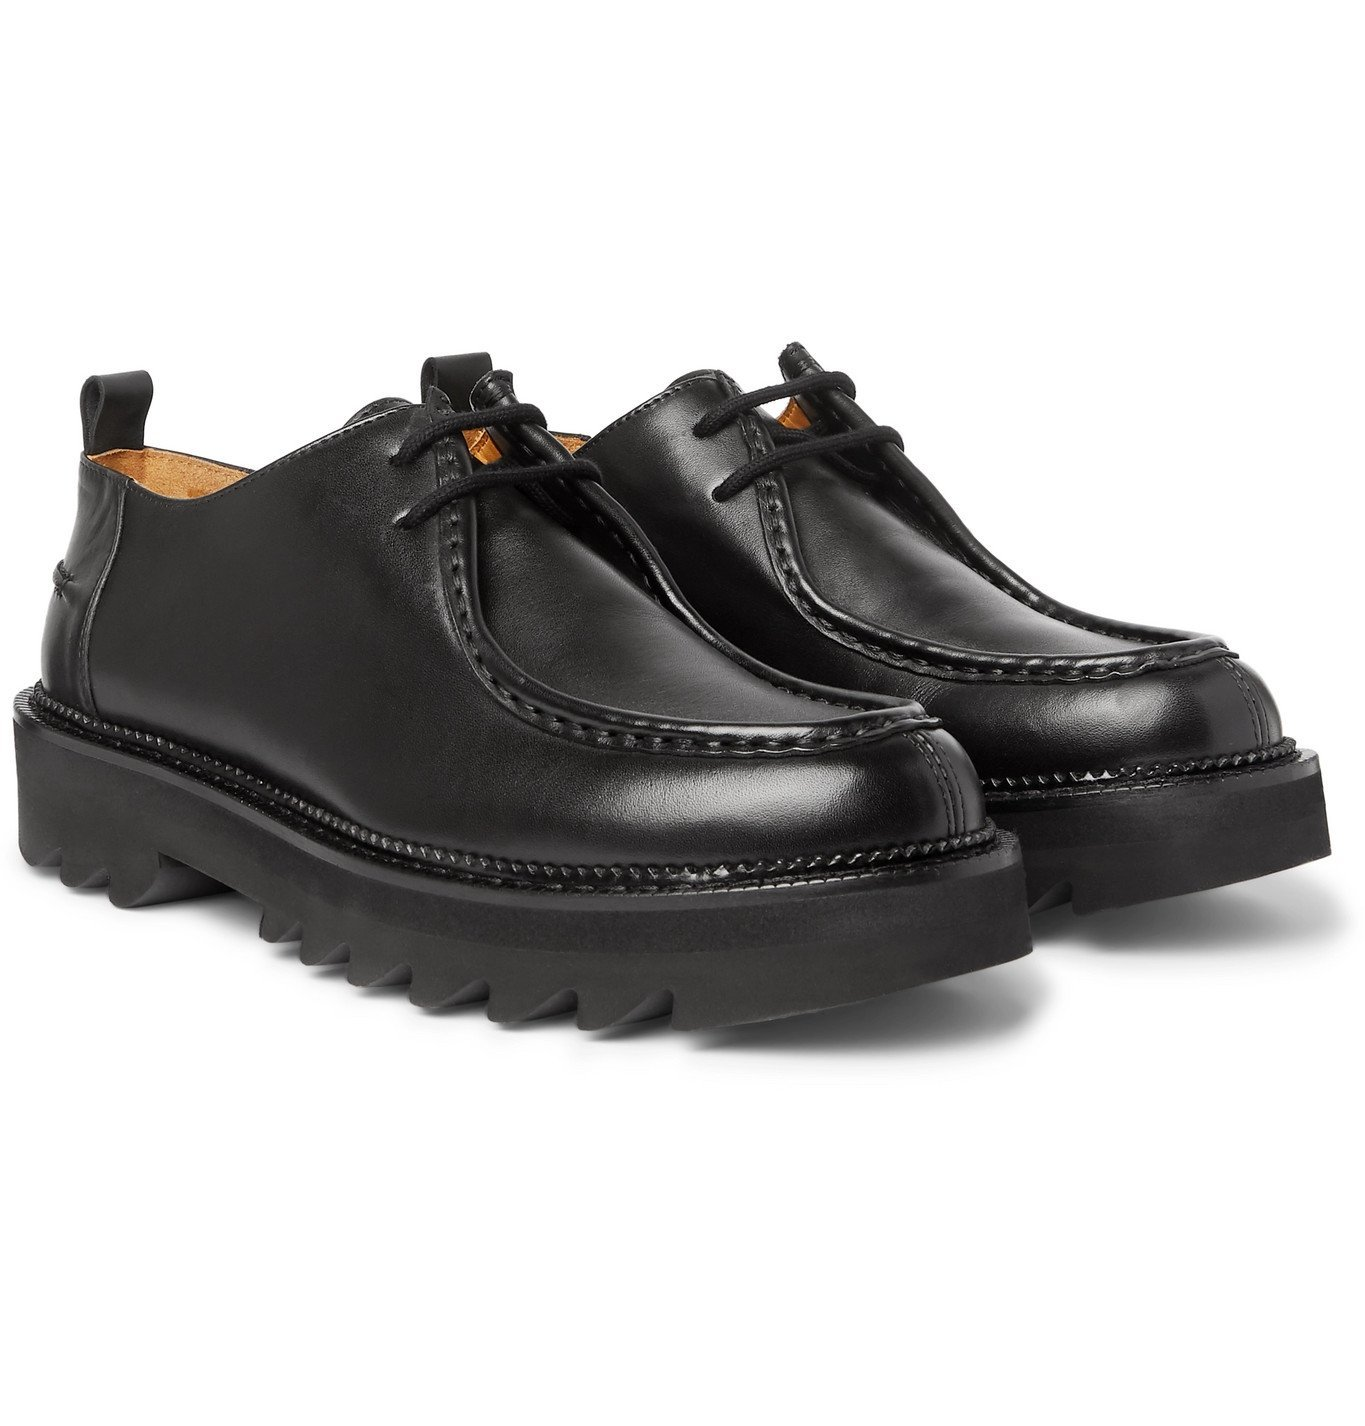 AMI - Leather Derby Shoes - Black